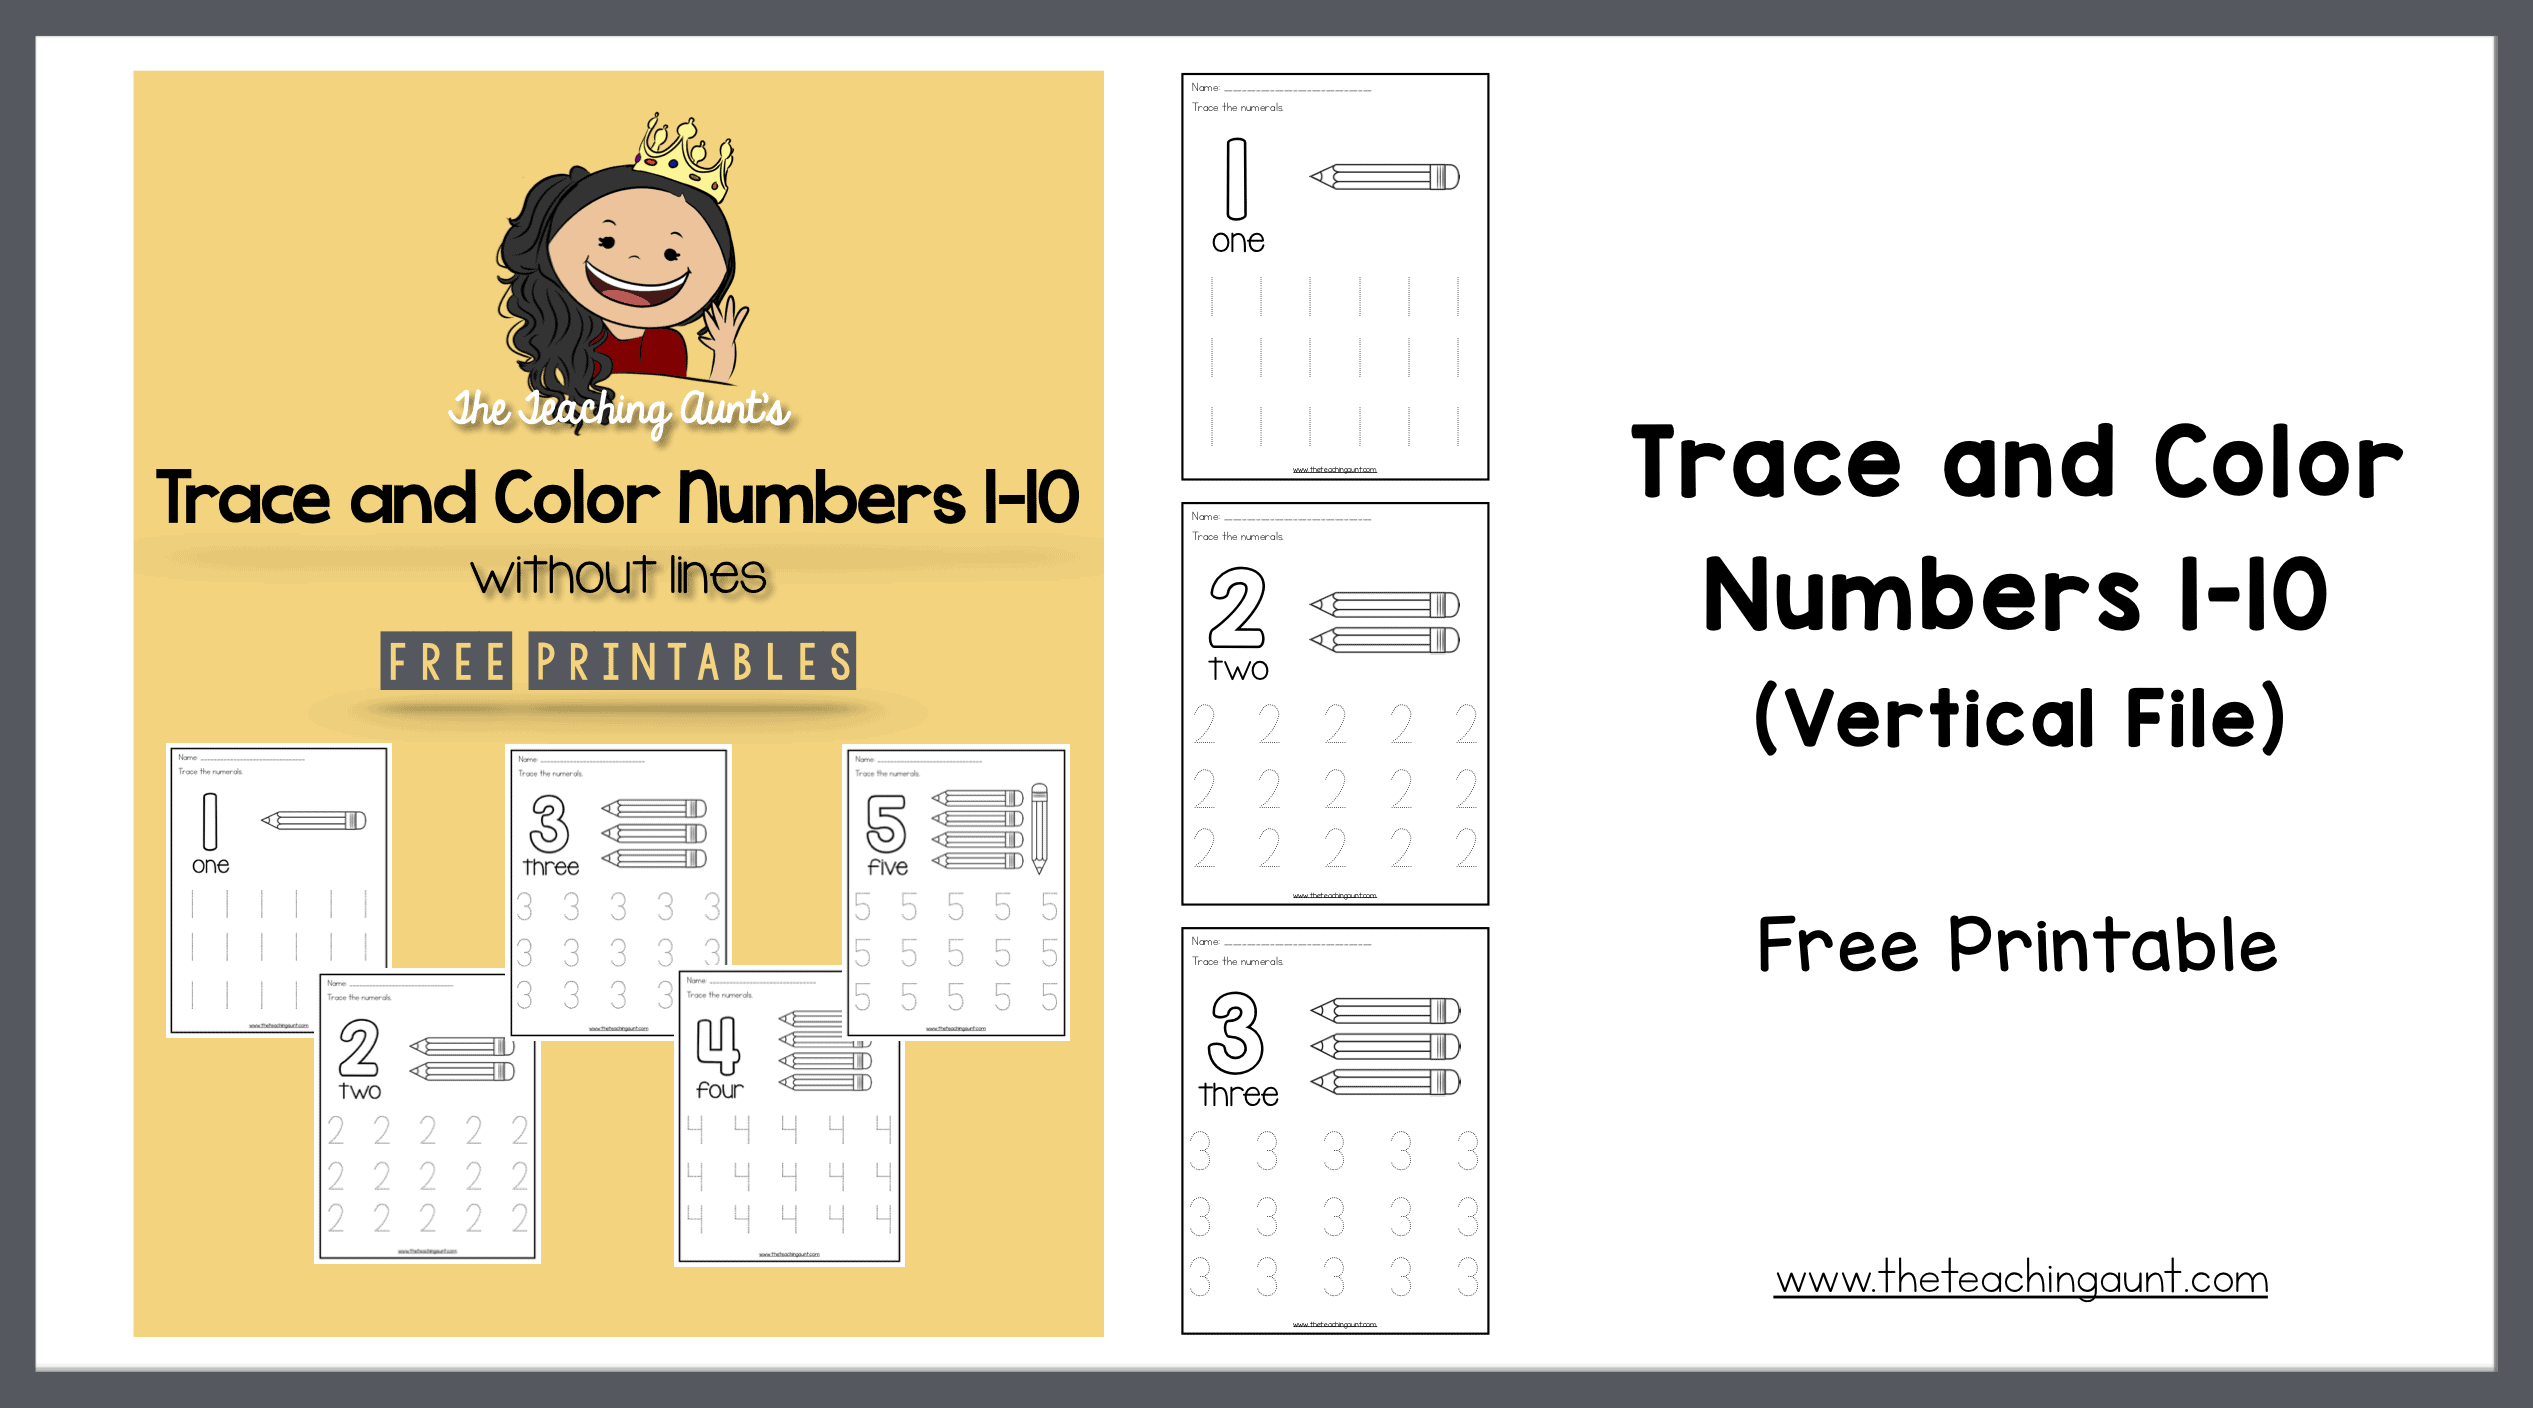 Trace And Color Numbers 1-10 - The Teaching Aunt